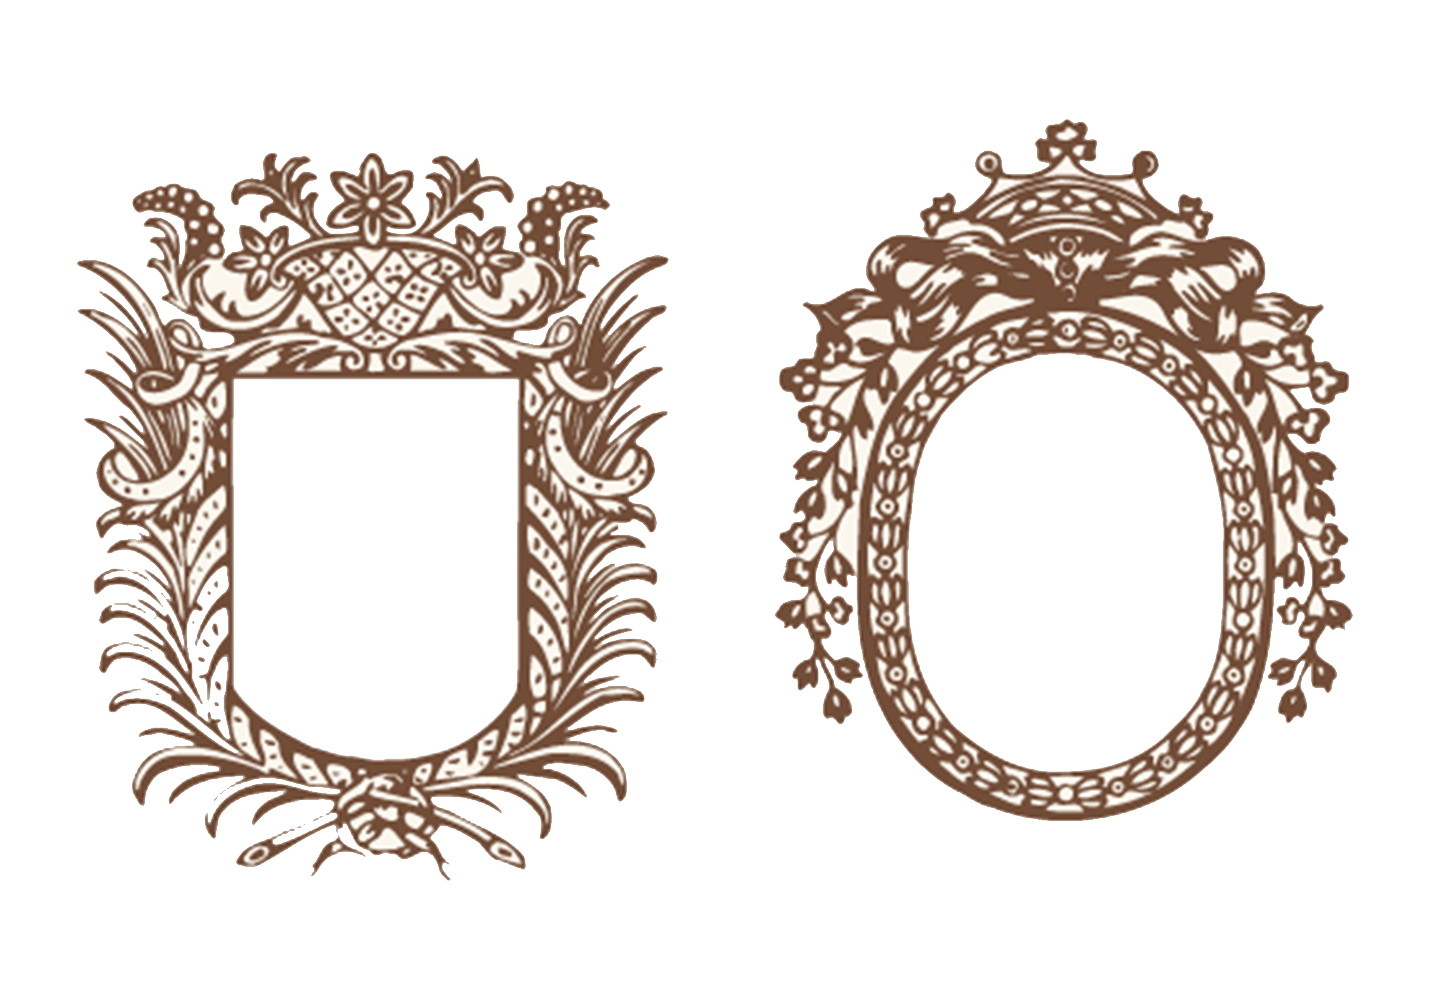 Royal vector mirror. Motif icon border transprent